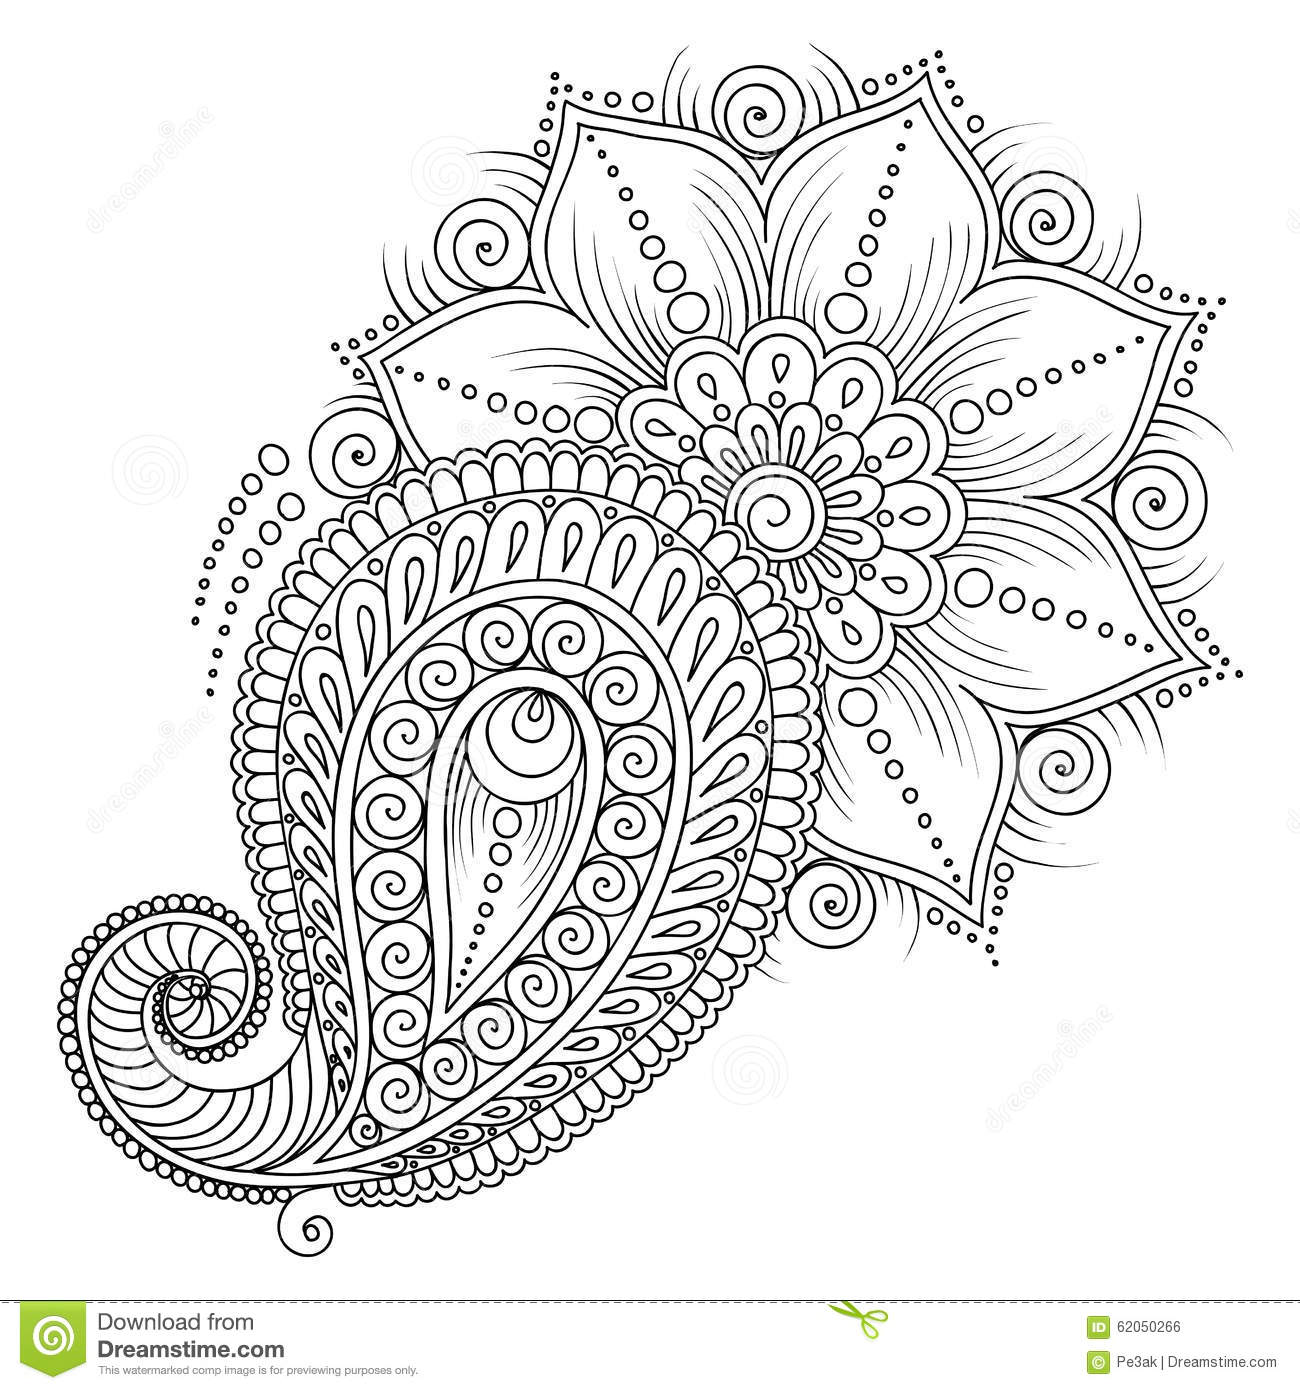 royalty free vector download pattern for coloring book - Pattern Coloring Books